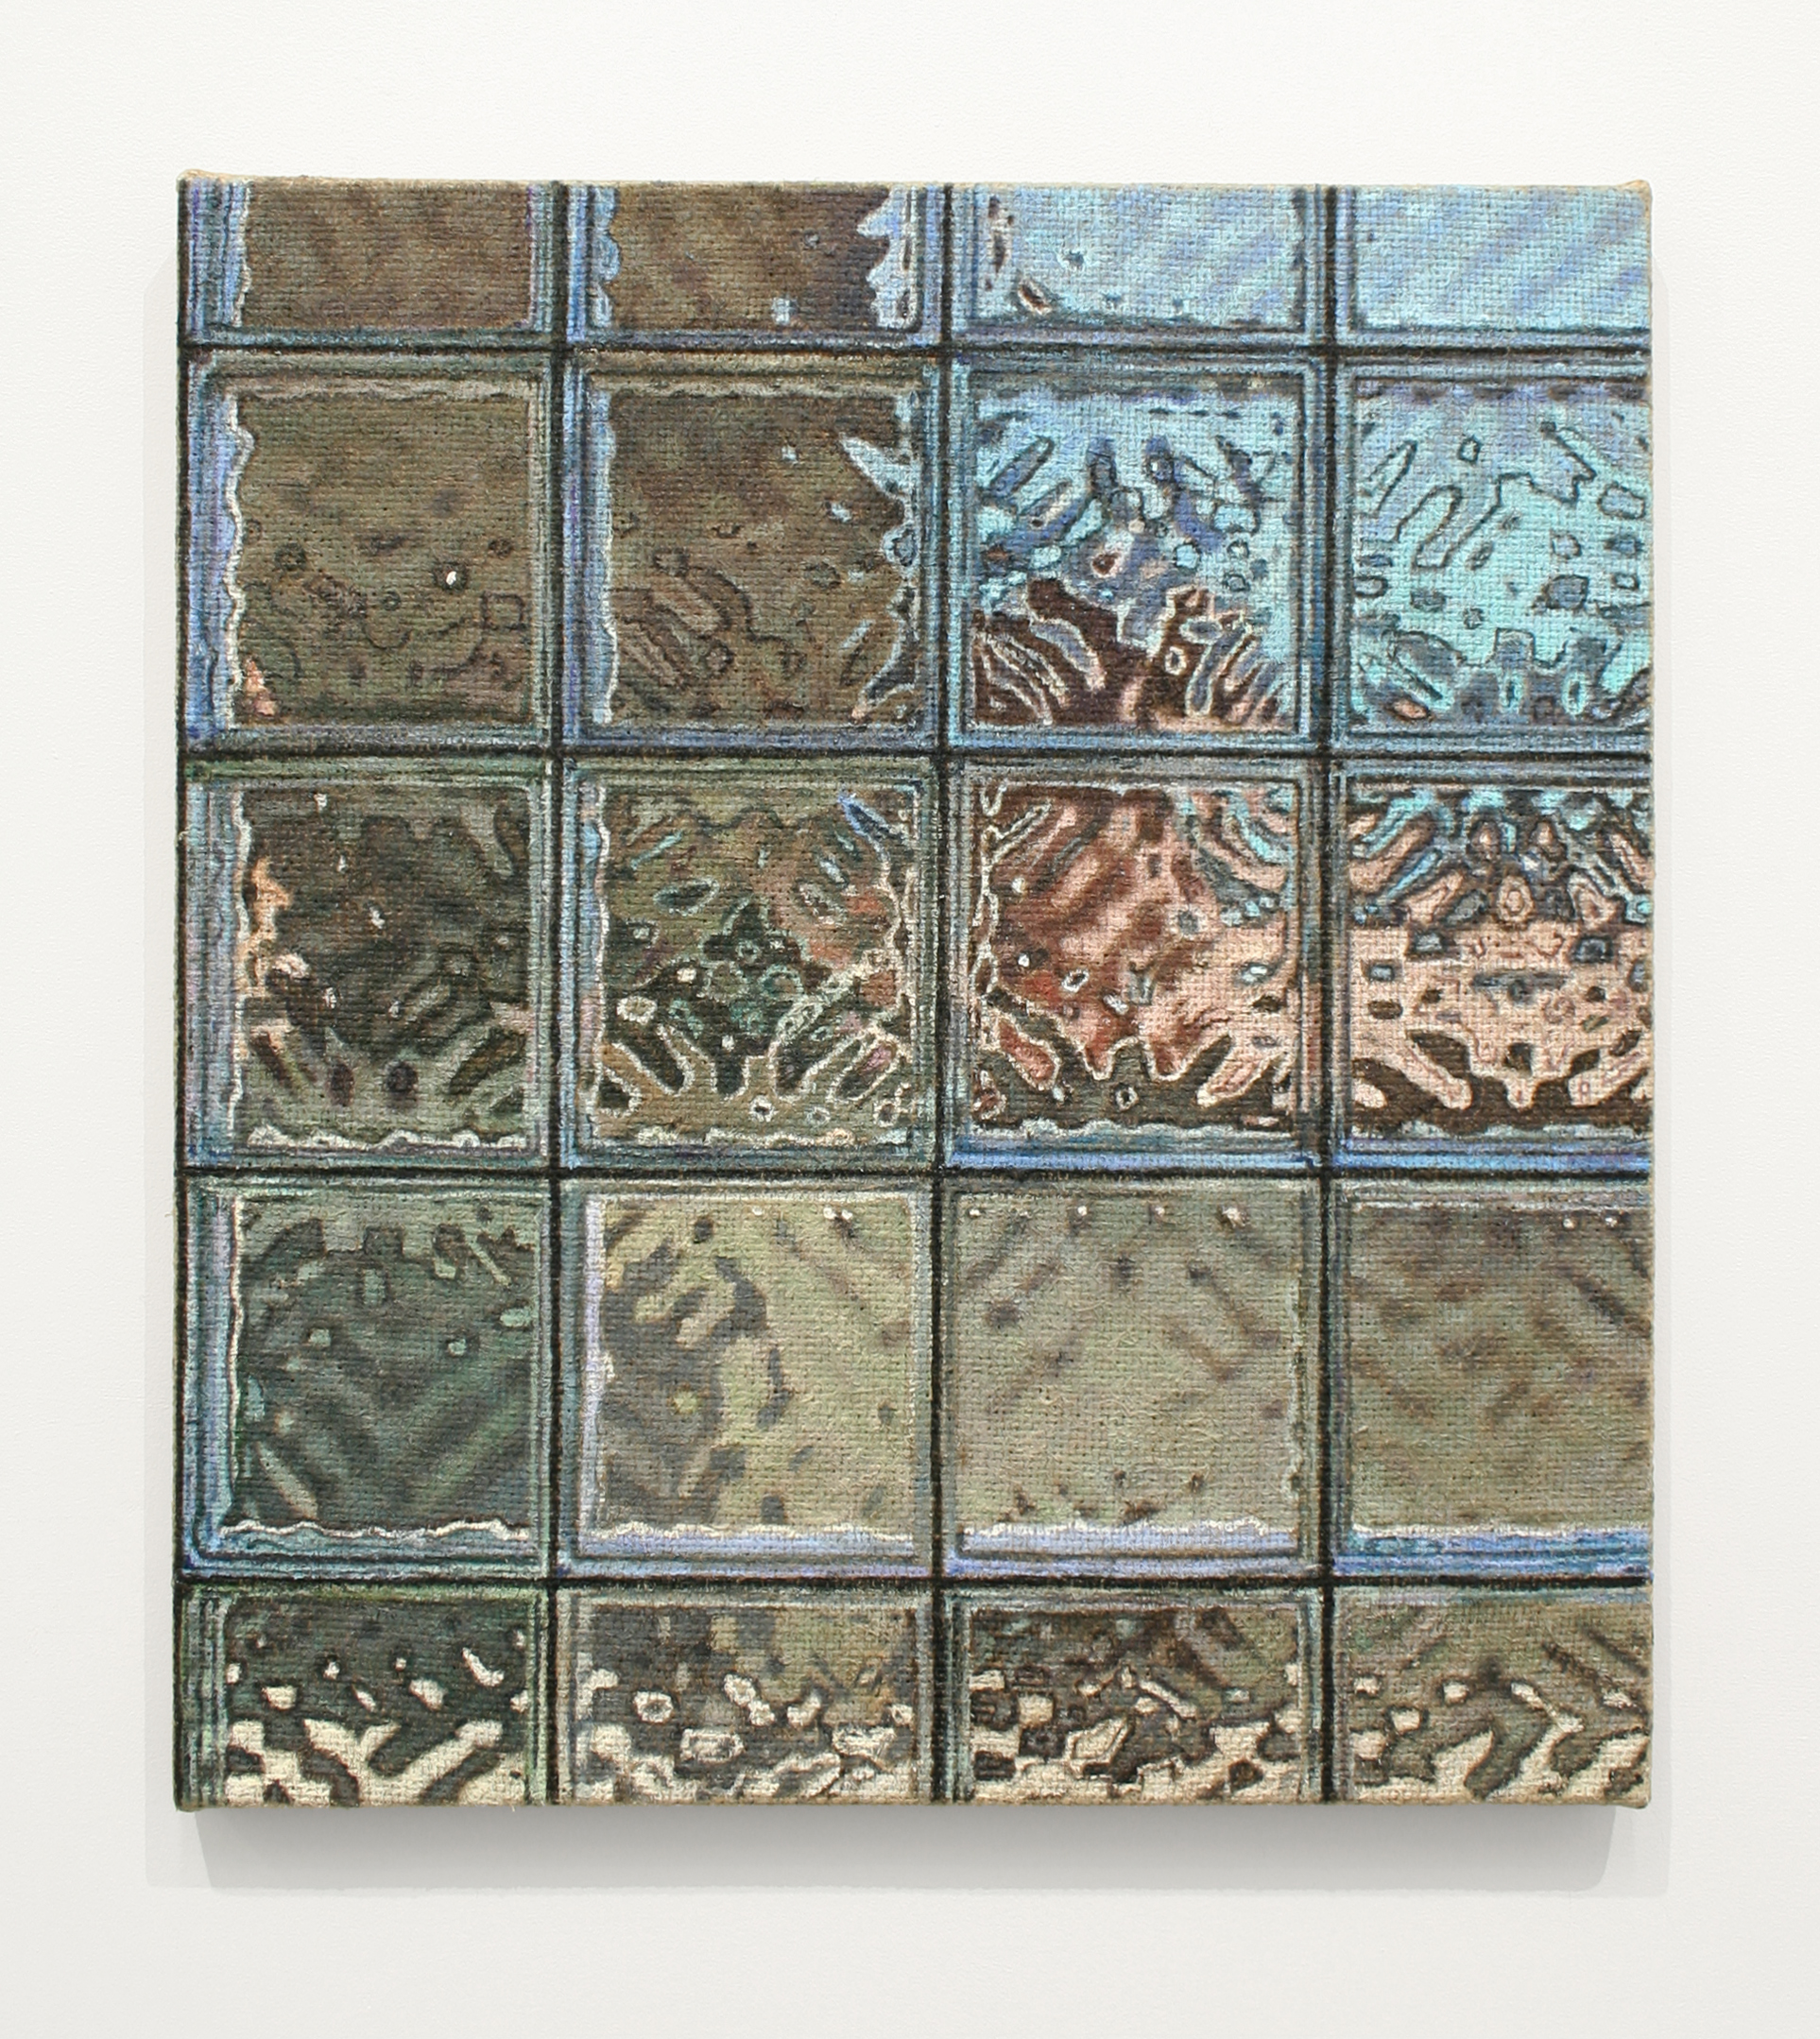 Jennifer J. Lee, Window III, 2018, oil on jute, 21 x 19 inches (courtesy of the artist and Klaus von Nichtssagend Gallery, NY)